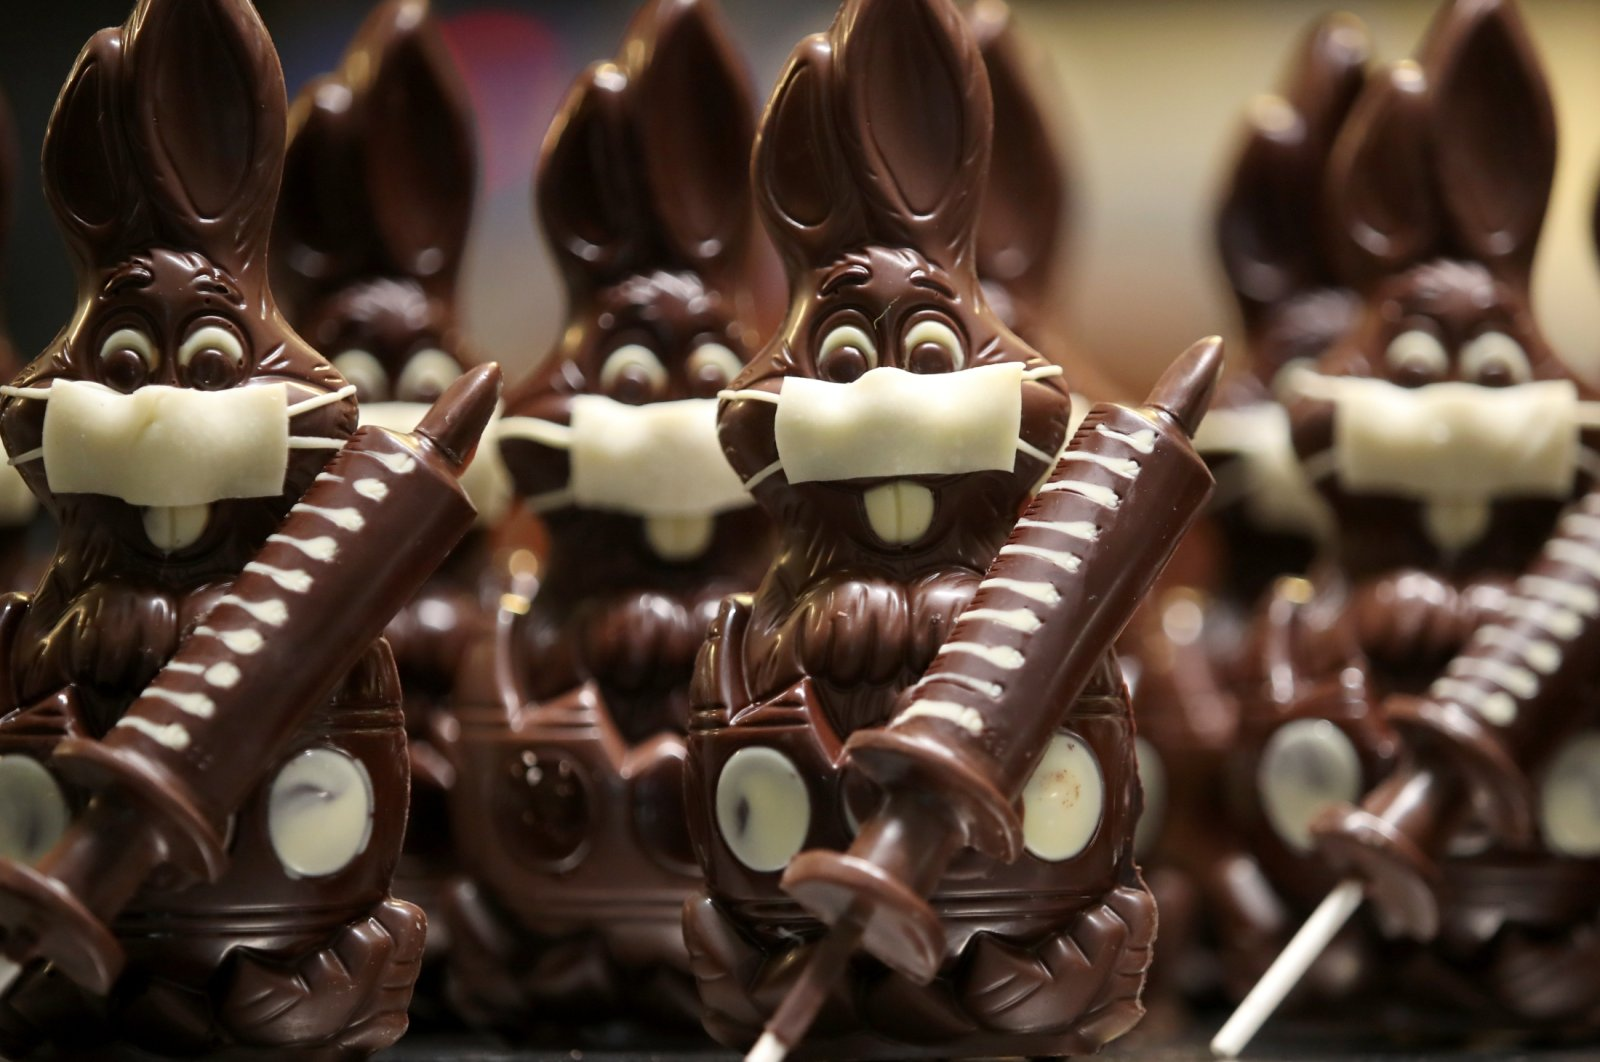 """Chocolate bunnies wearing protective masks and holding vaccine syringes called """"L'Atch'a Azteka"""" are seen at artisan Genevieve Trepant's workshop, Cocoatree in Lonzee, Belgium, April 30, 2021. (Reuters Photo)"""